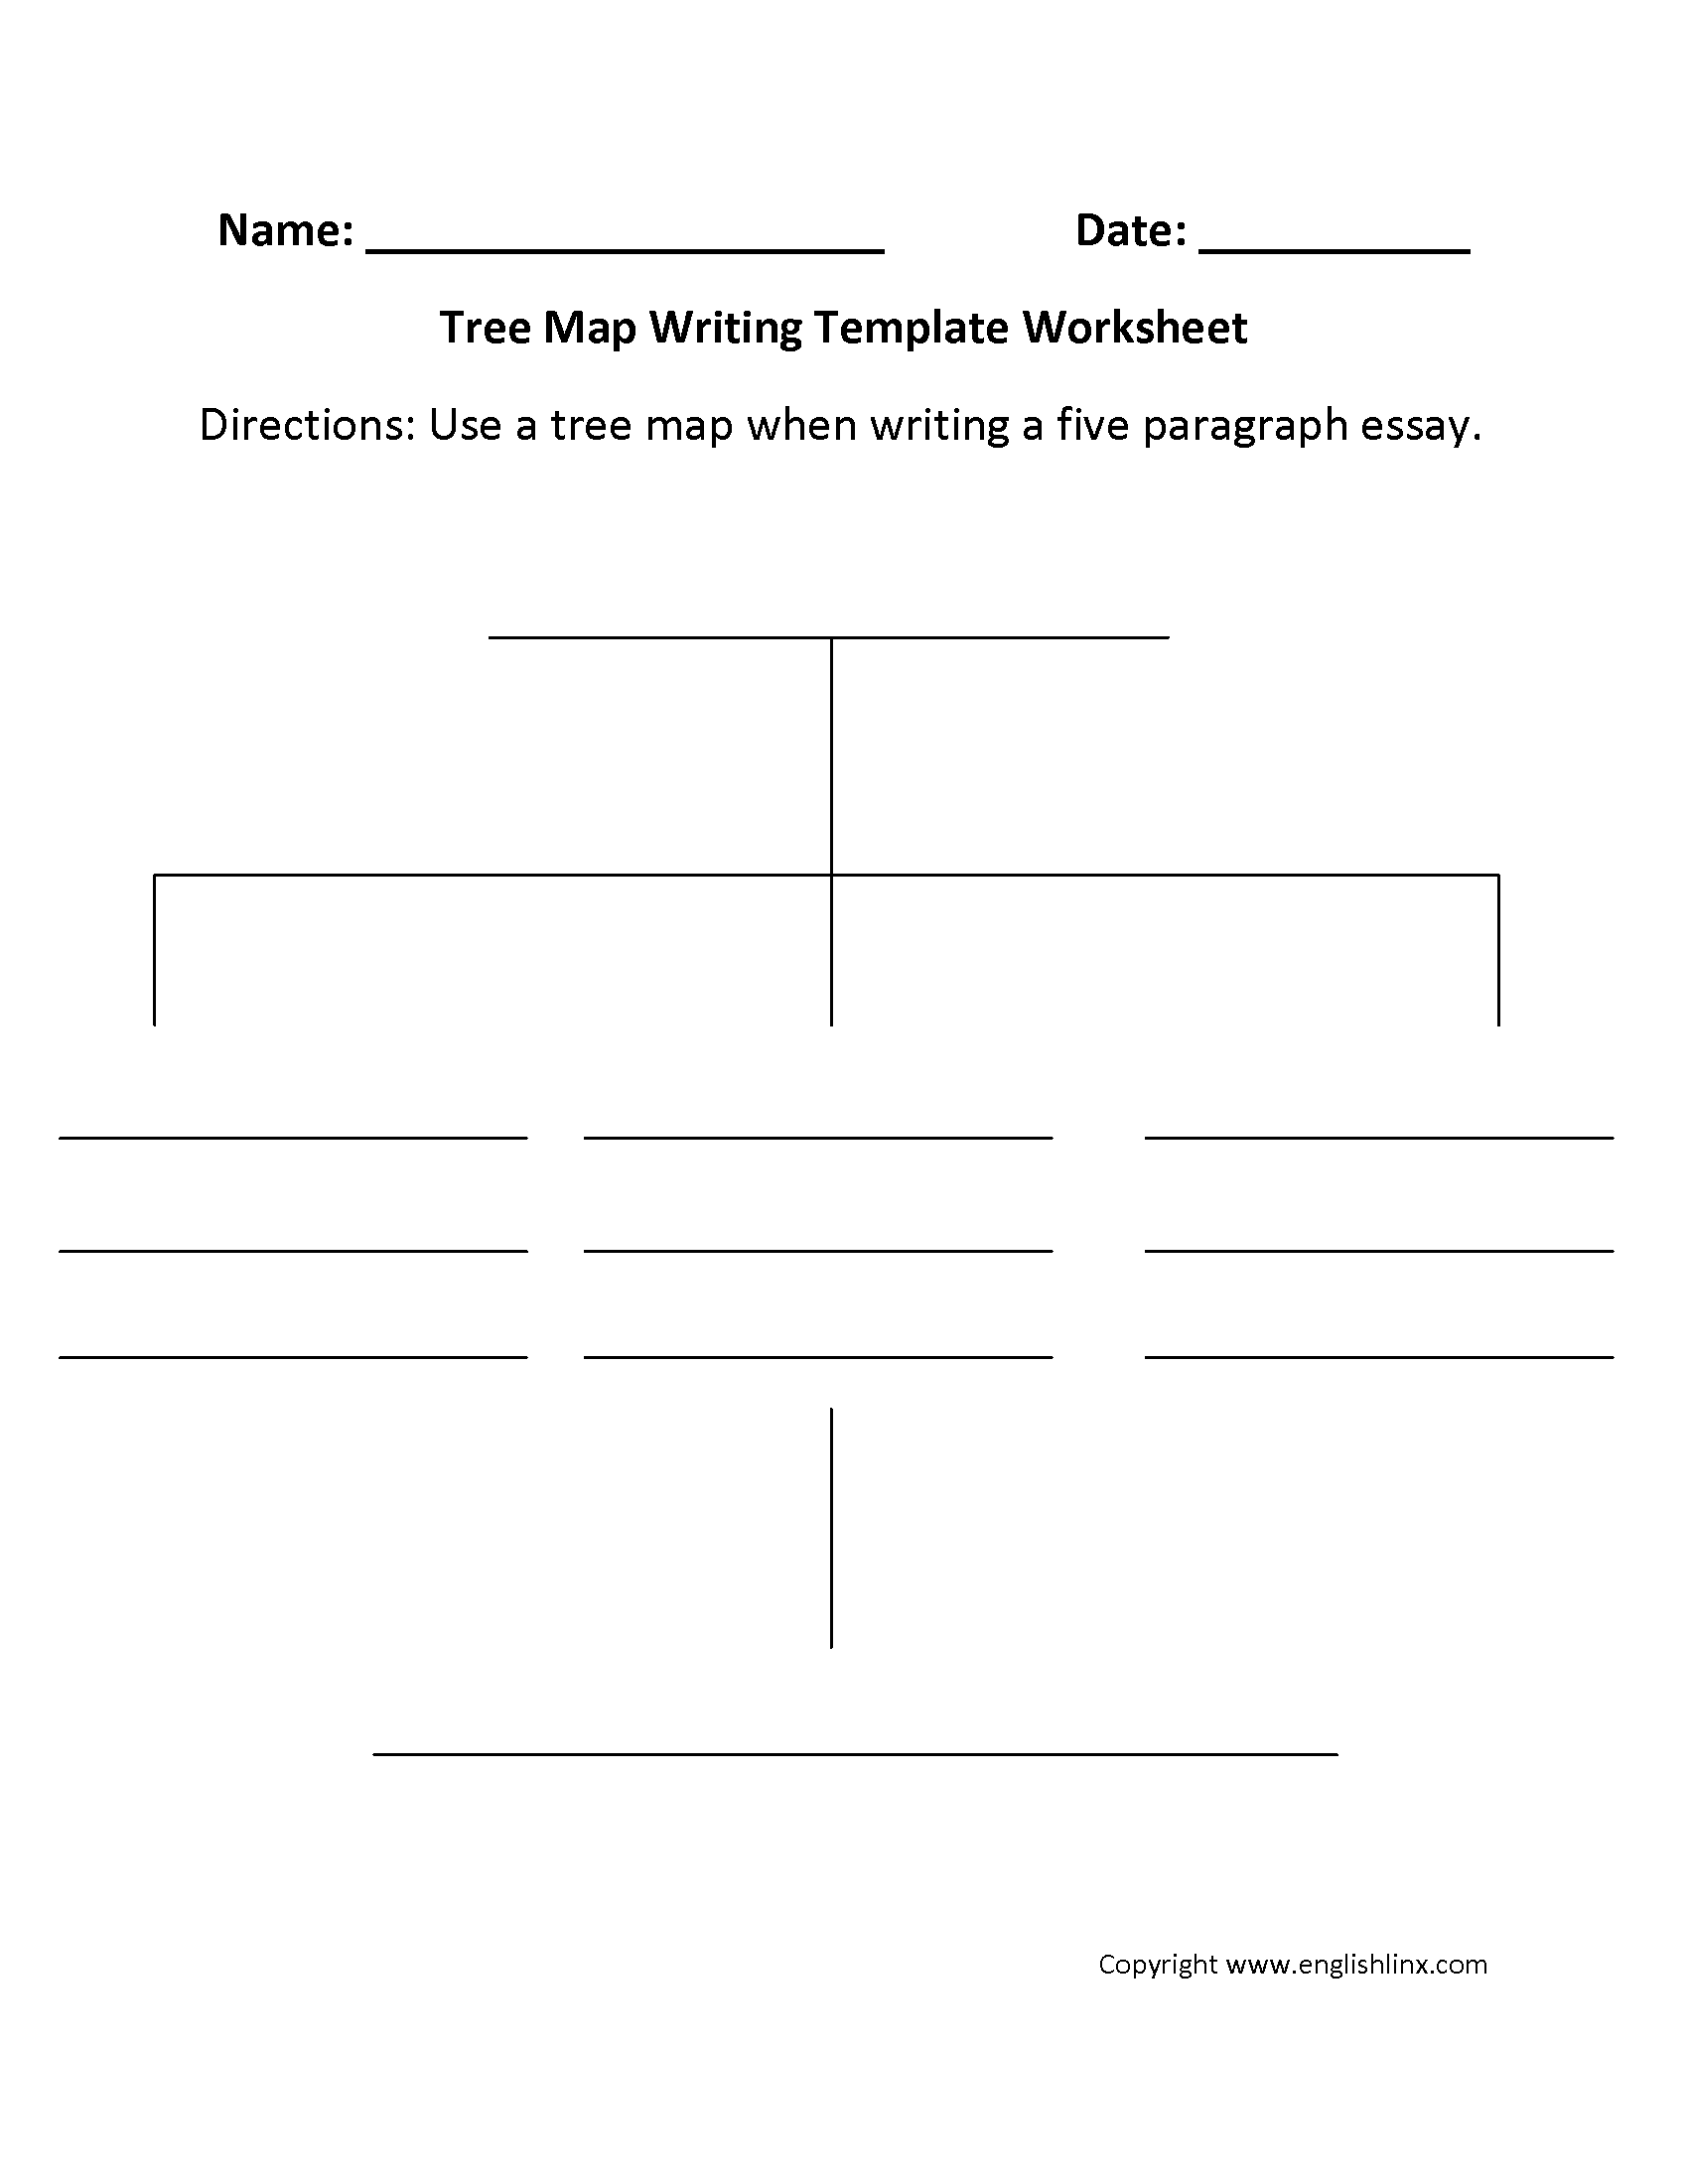 Essayedge brainstorming worksheet writing and editing for Template for writing a will